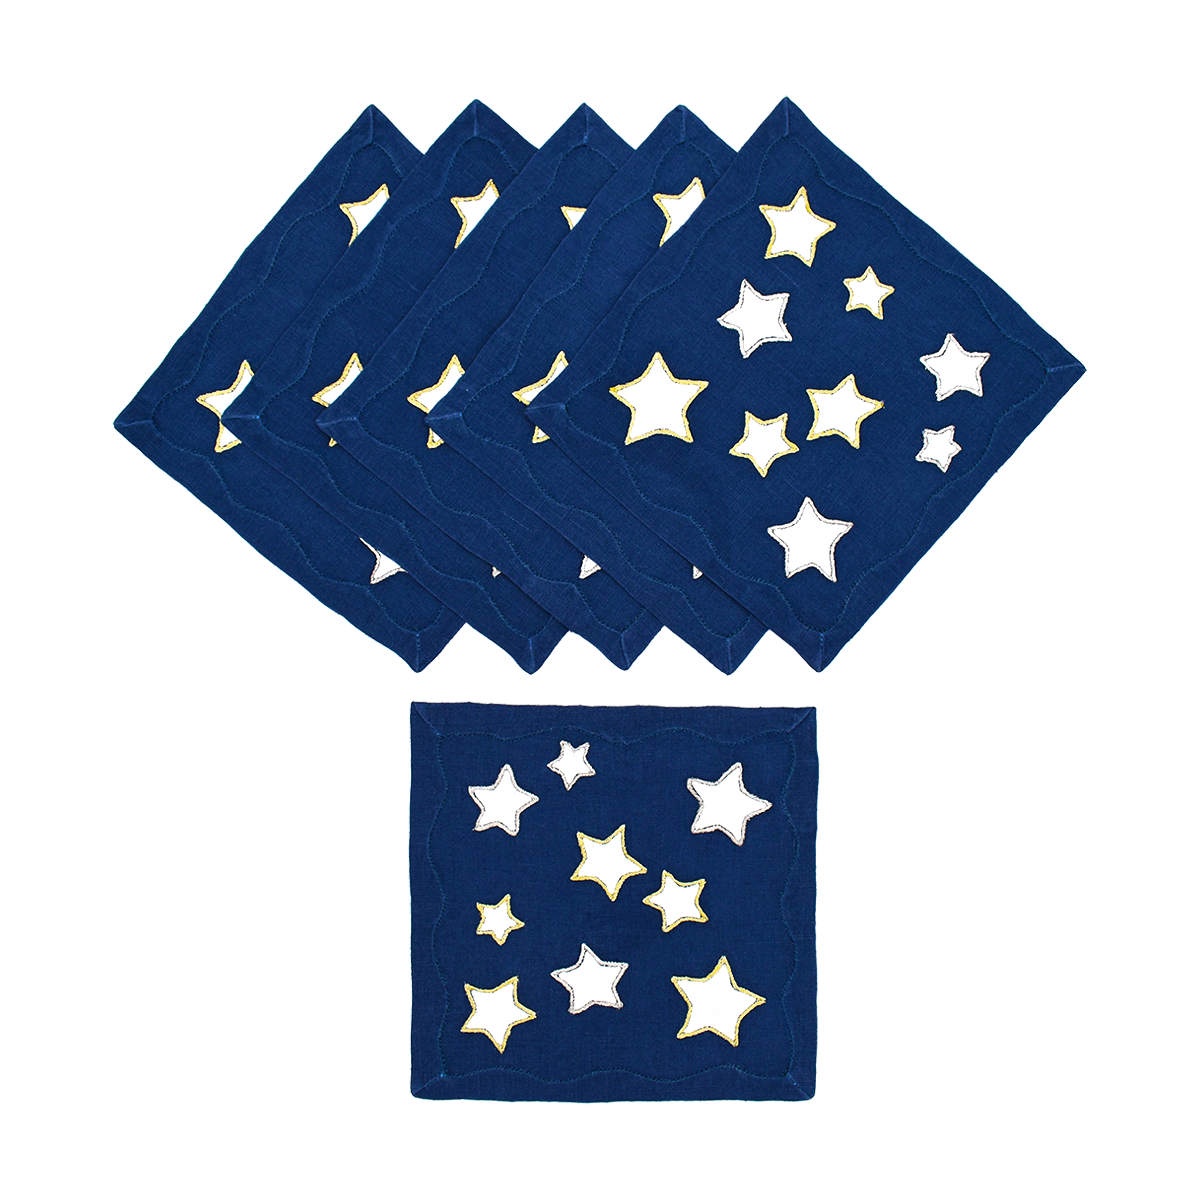 Starry Night Cocktail Napkins, Set of 6